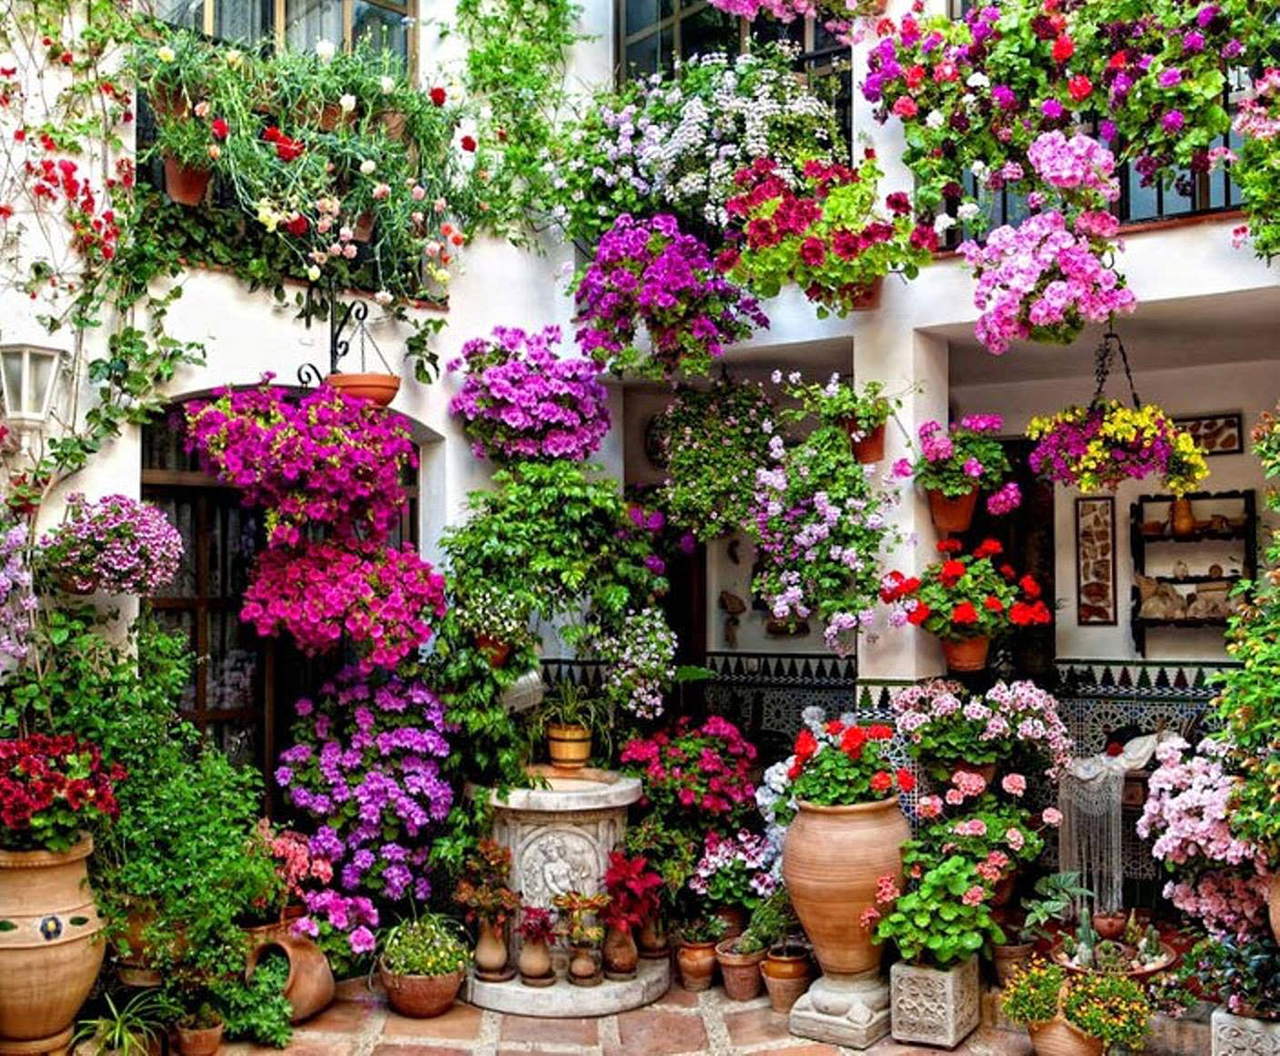 A Two Story Hanging Garden Of Flowers